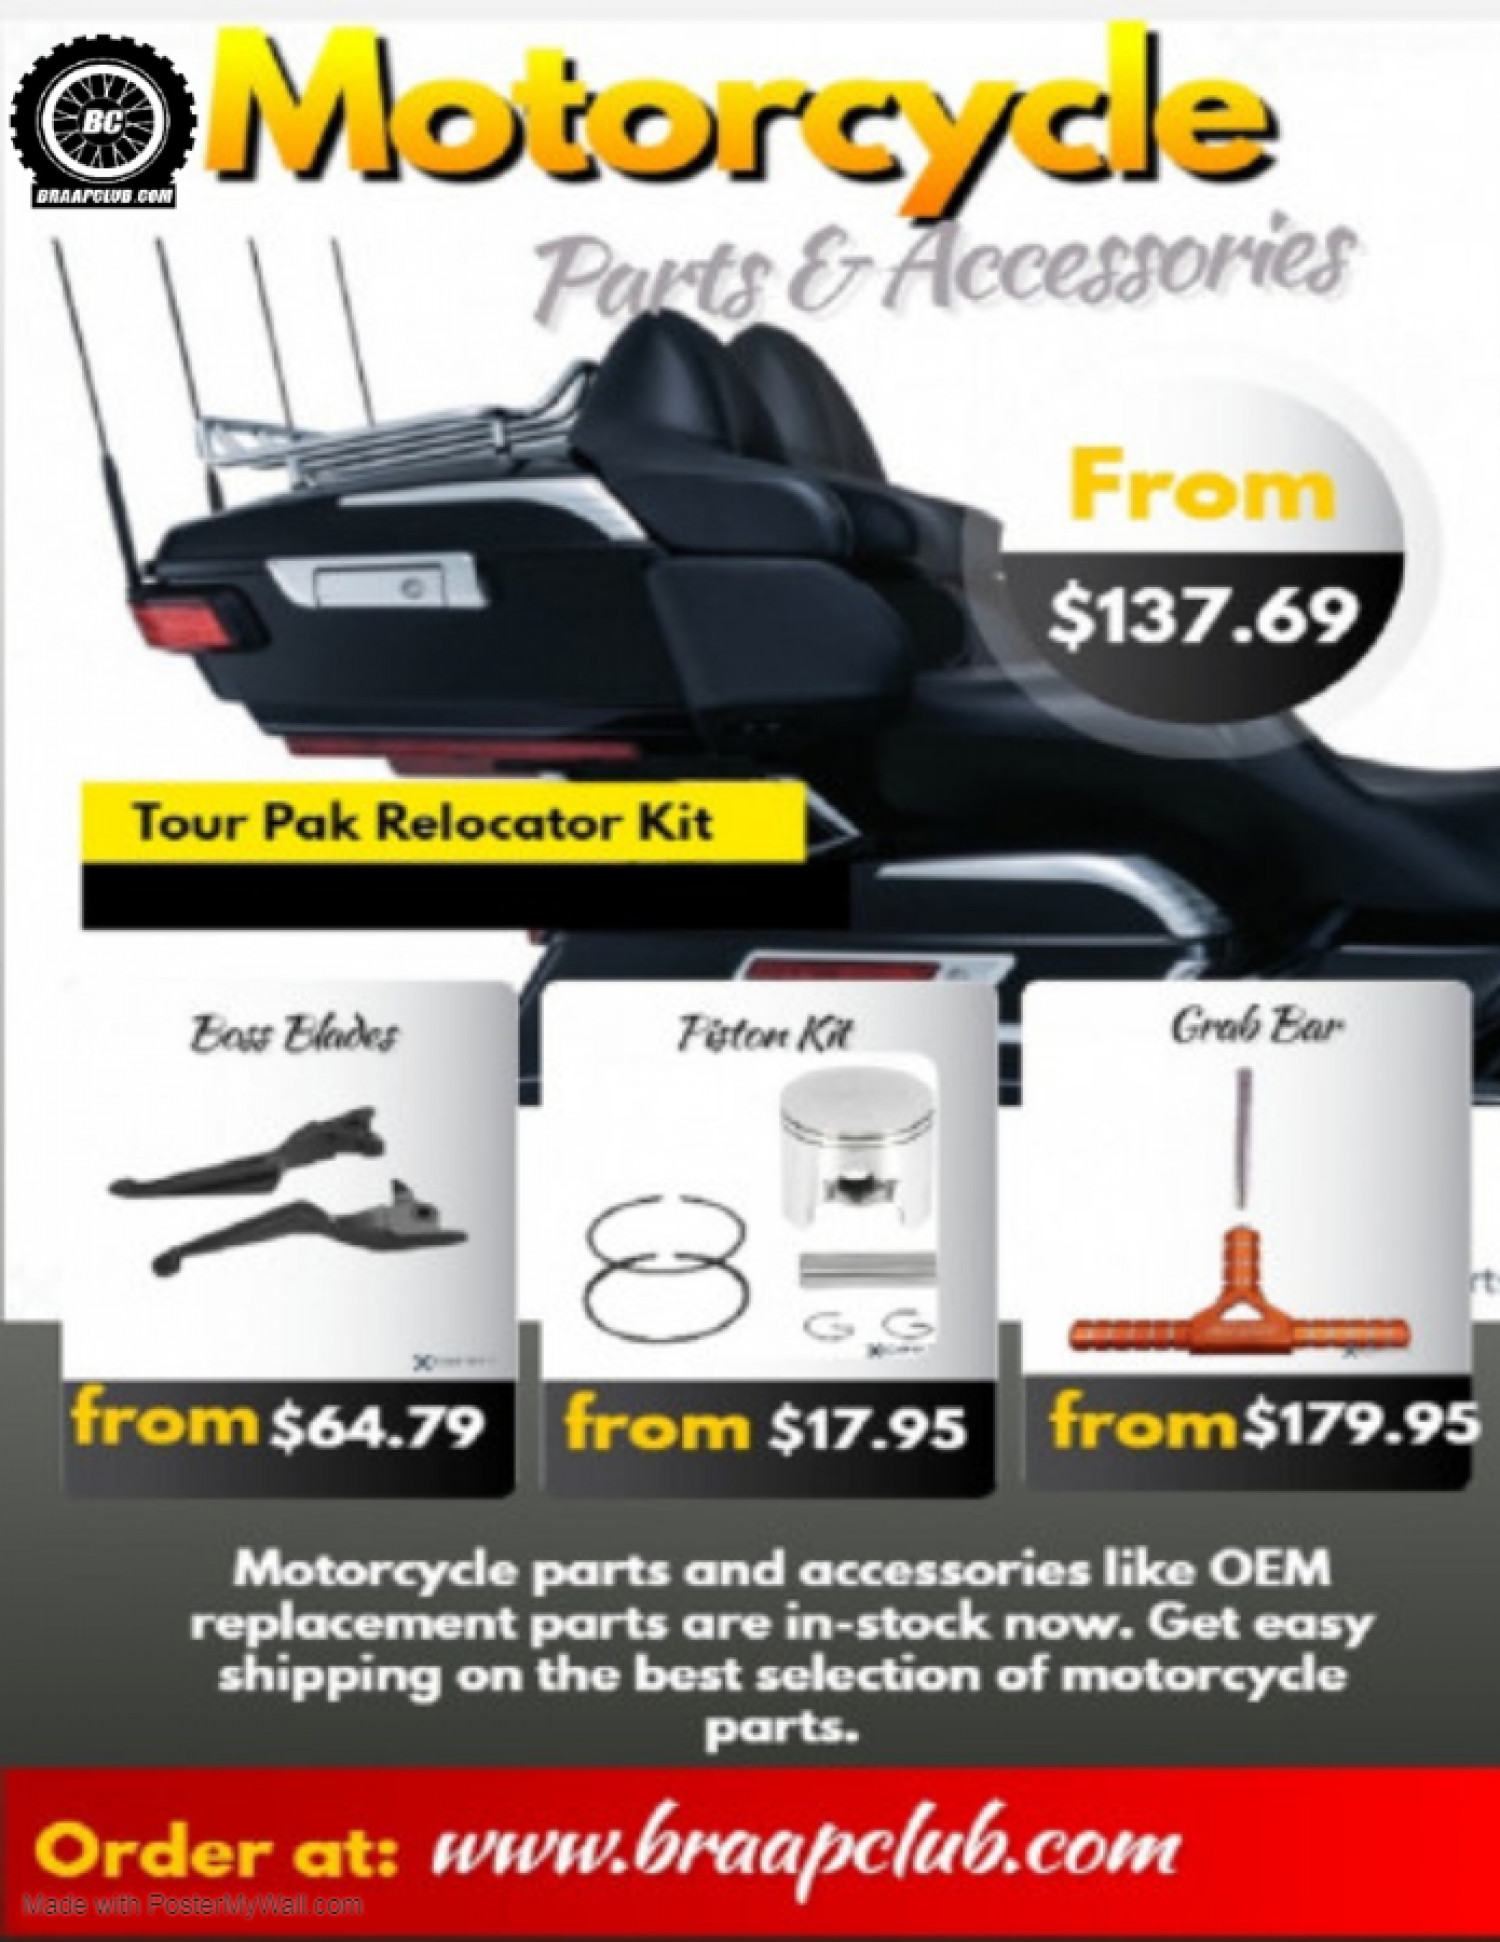 Motorcycle parts and Accessories Infographic